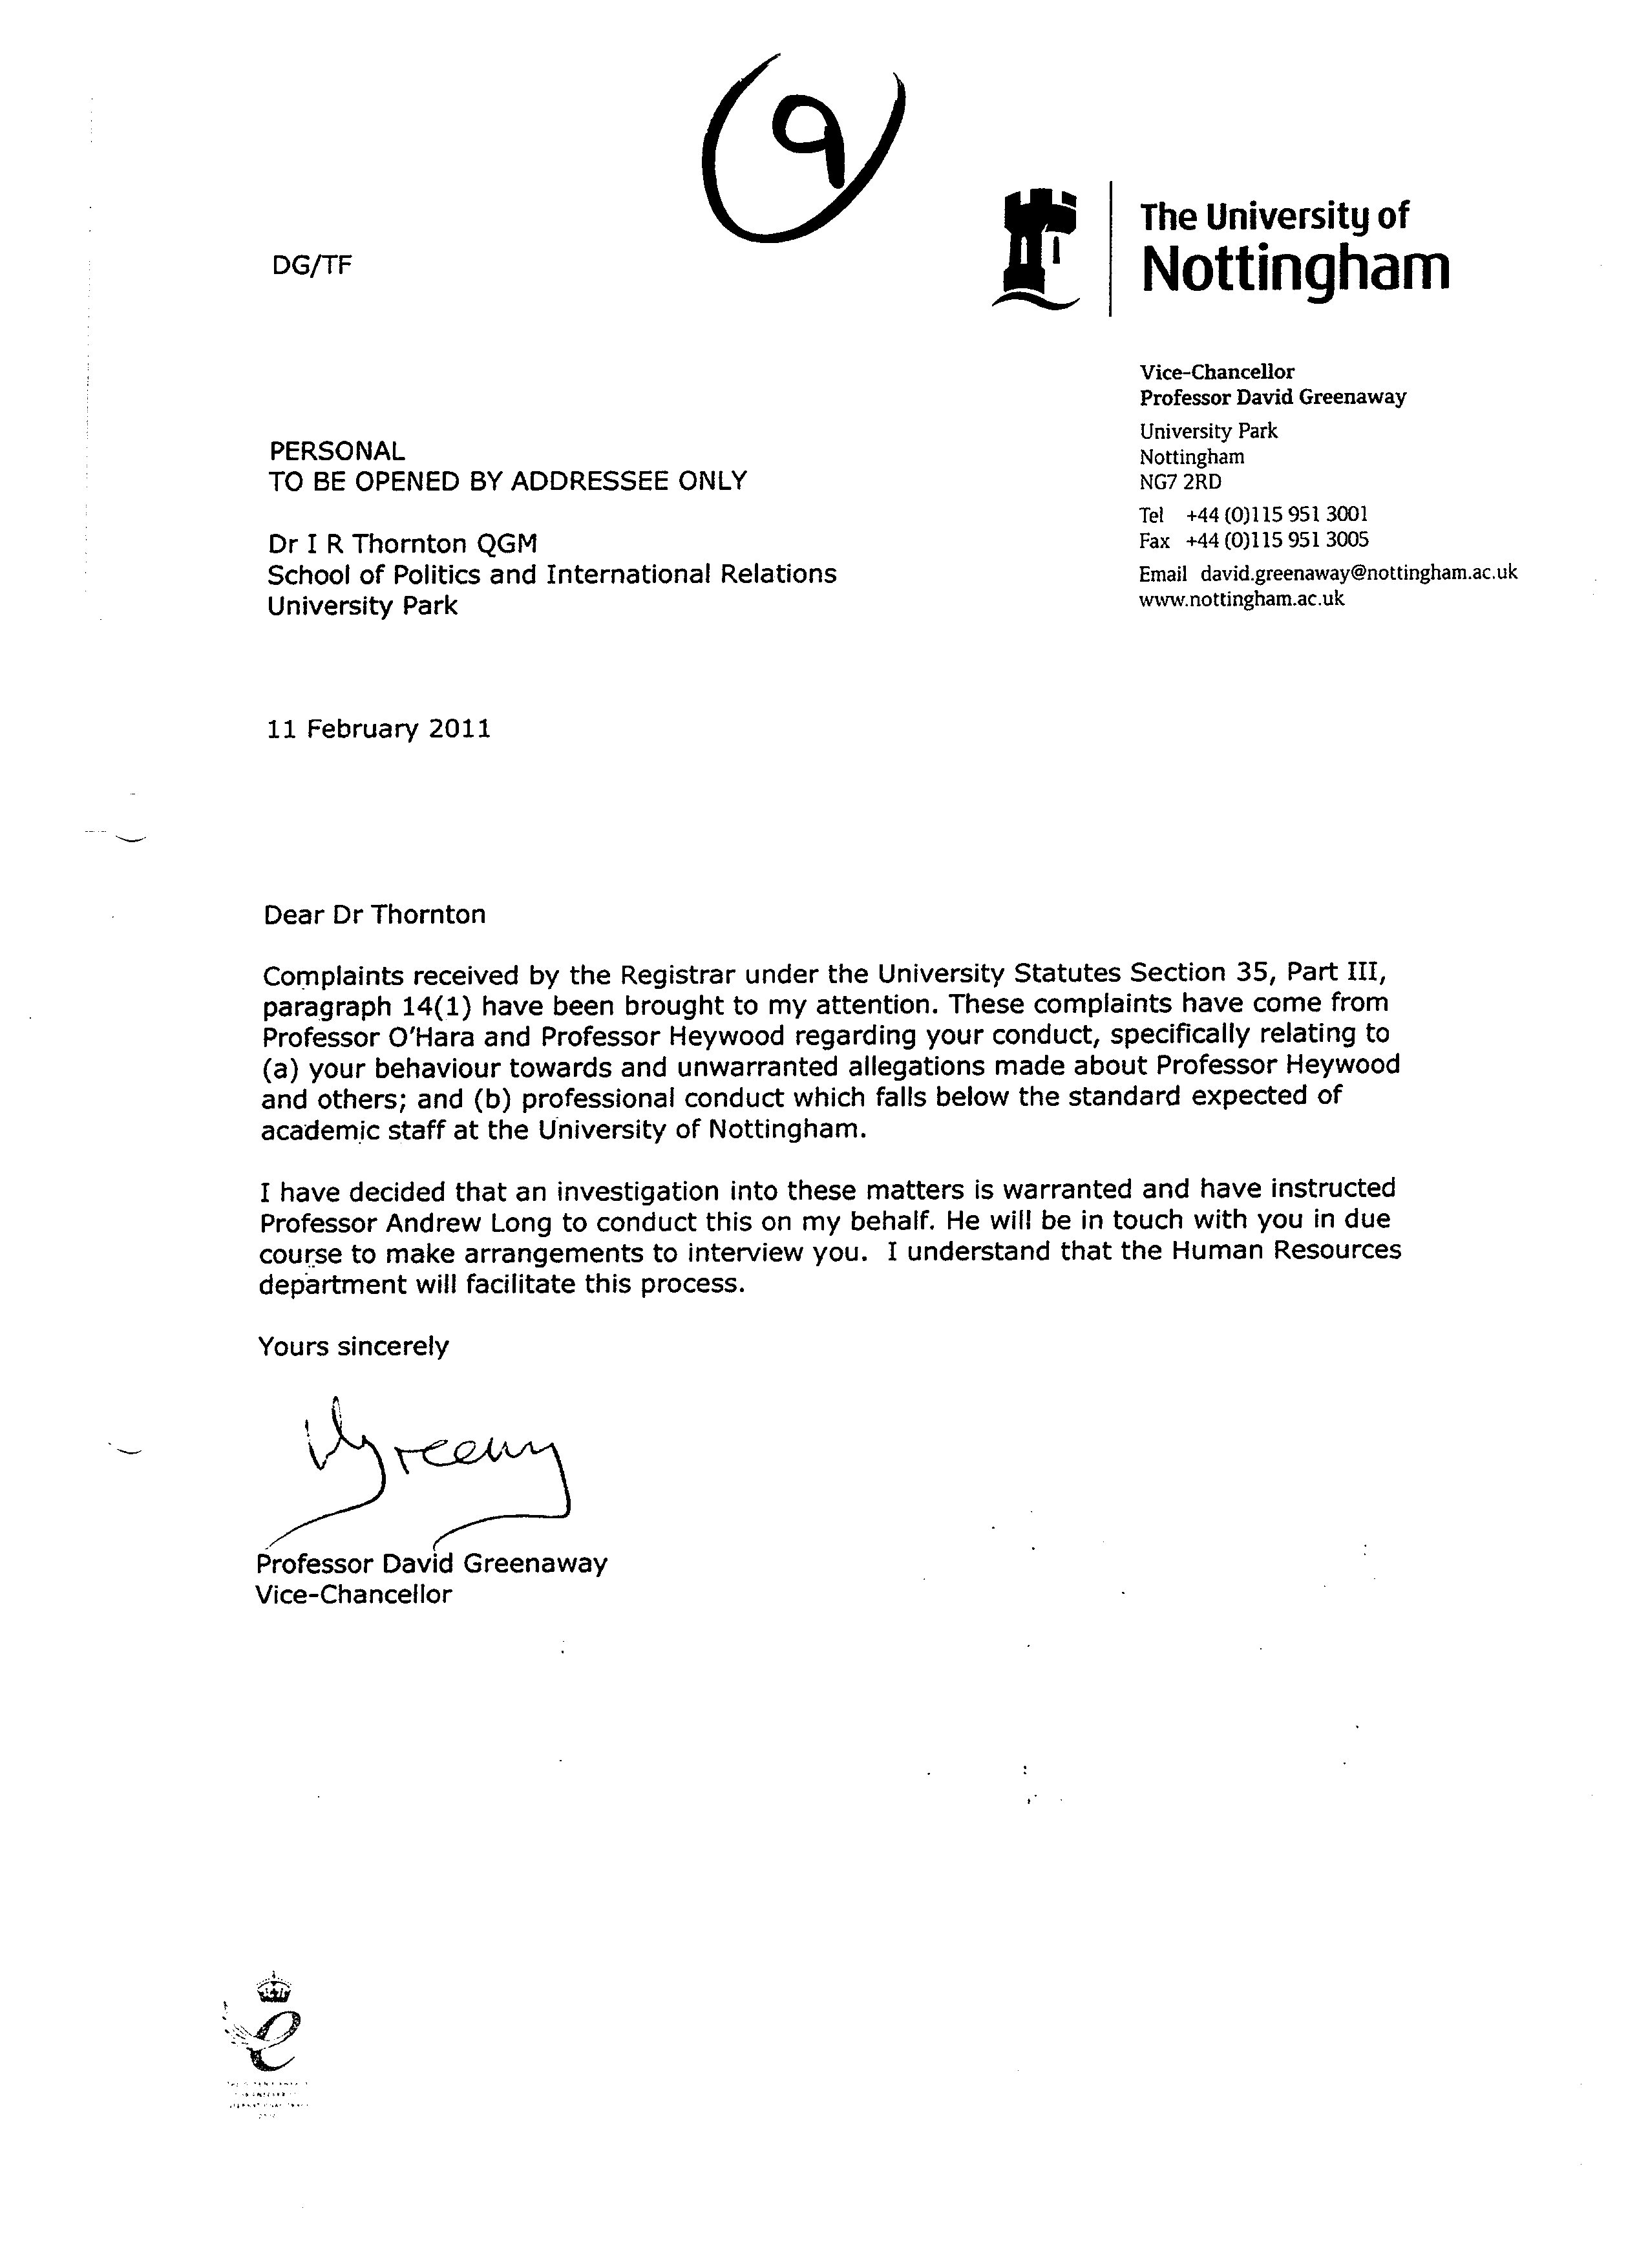 Radicalisation at universities or radicalisation by universities letter to author from vice chancellor professional david greenaway 11 february 2011 spiritdancerdesigns Gallery